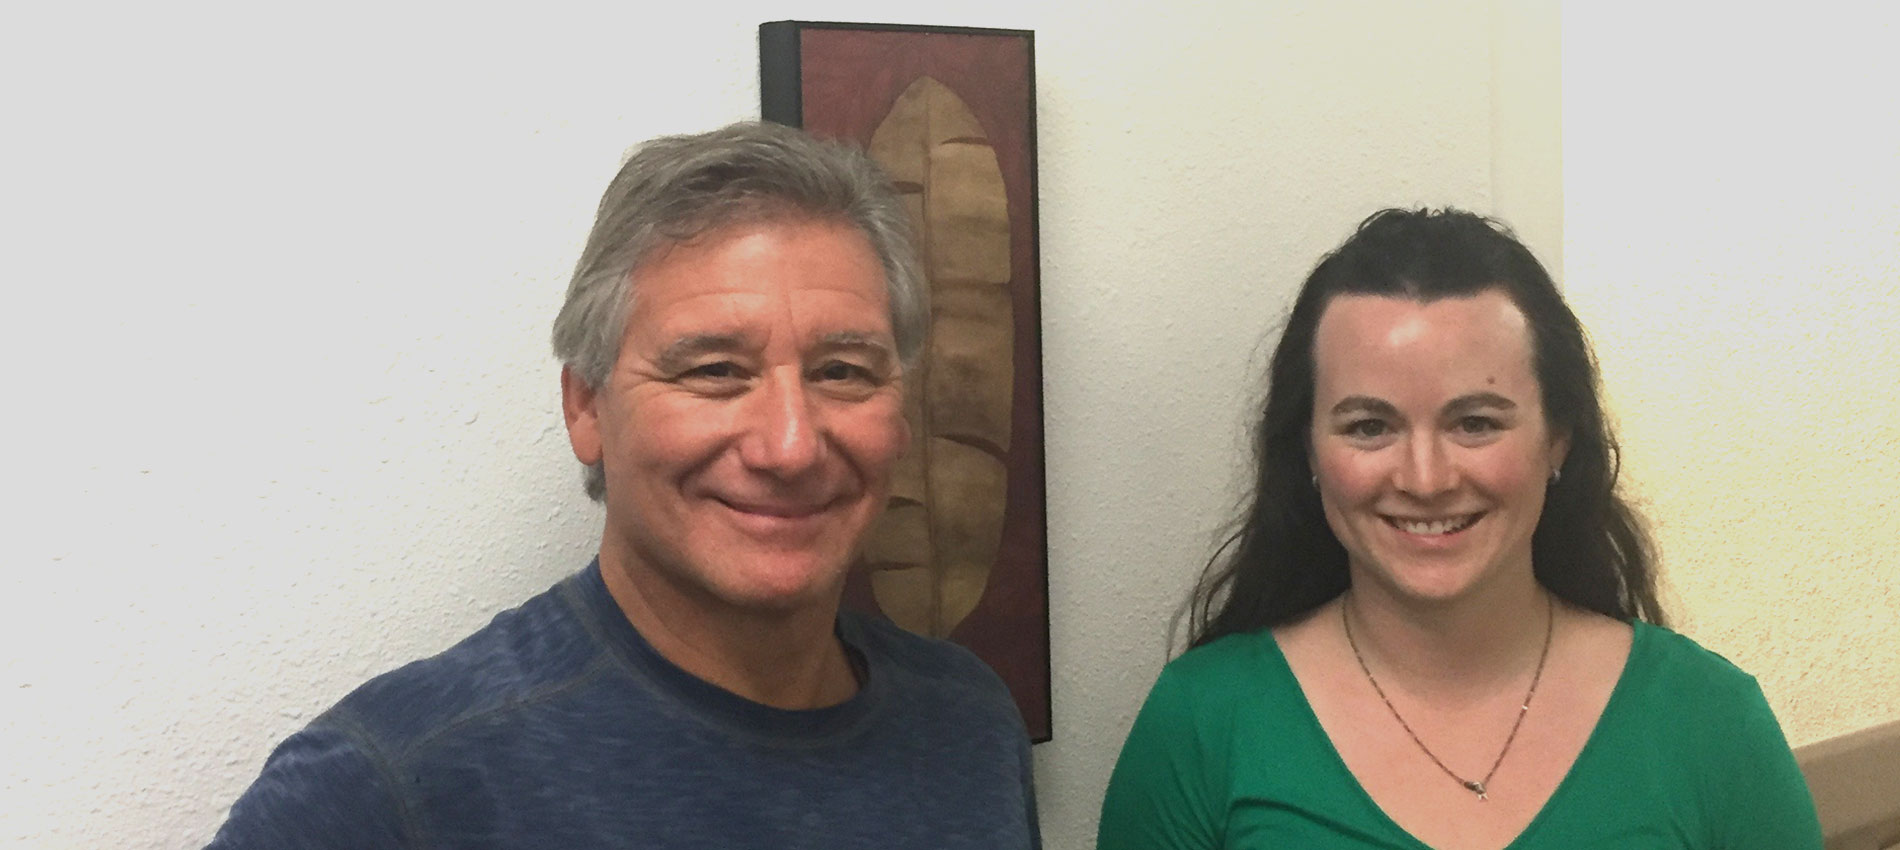 Drs. Robyn Moreau & Tom Martin welcome you to Kelowna Family Dental